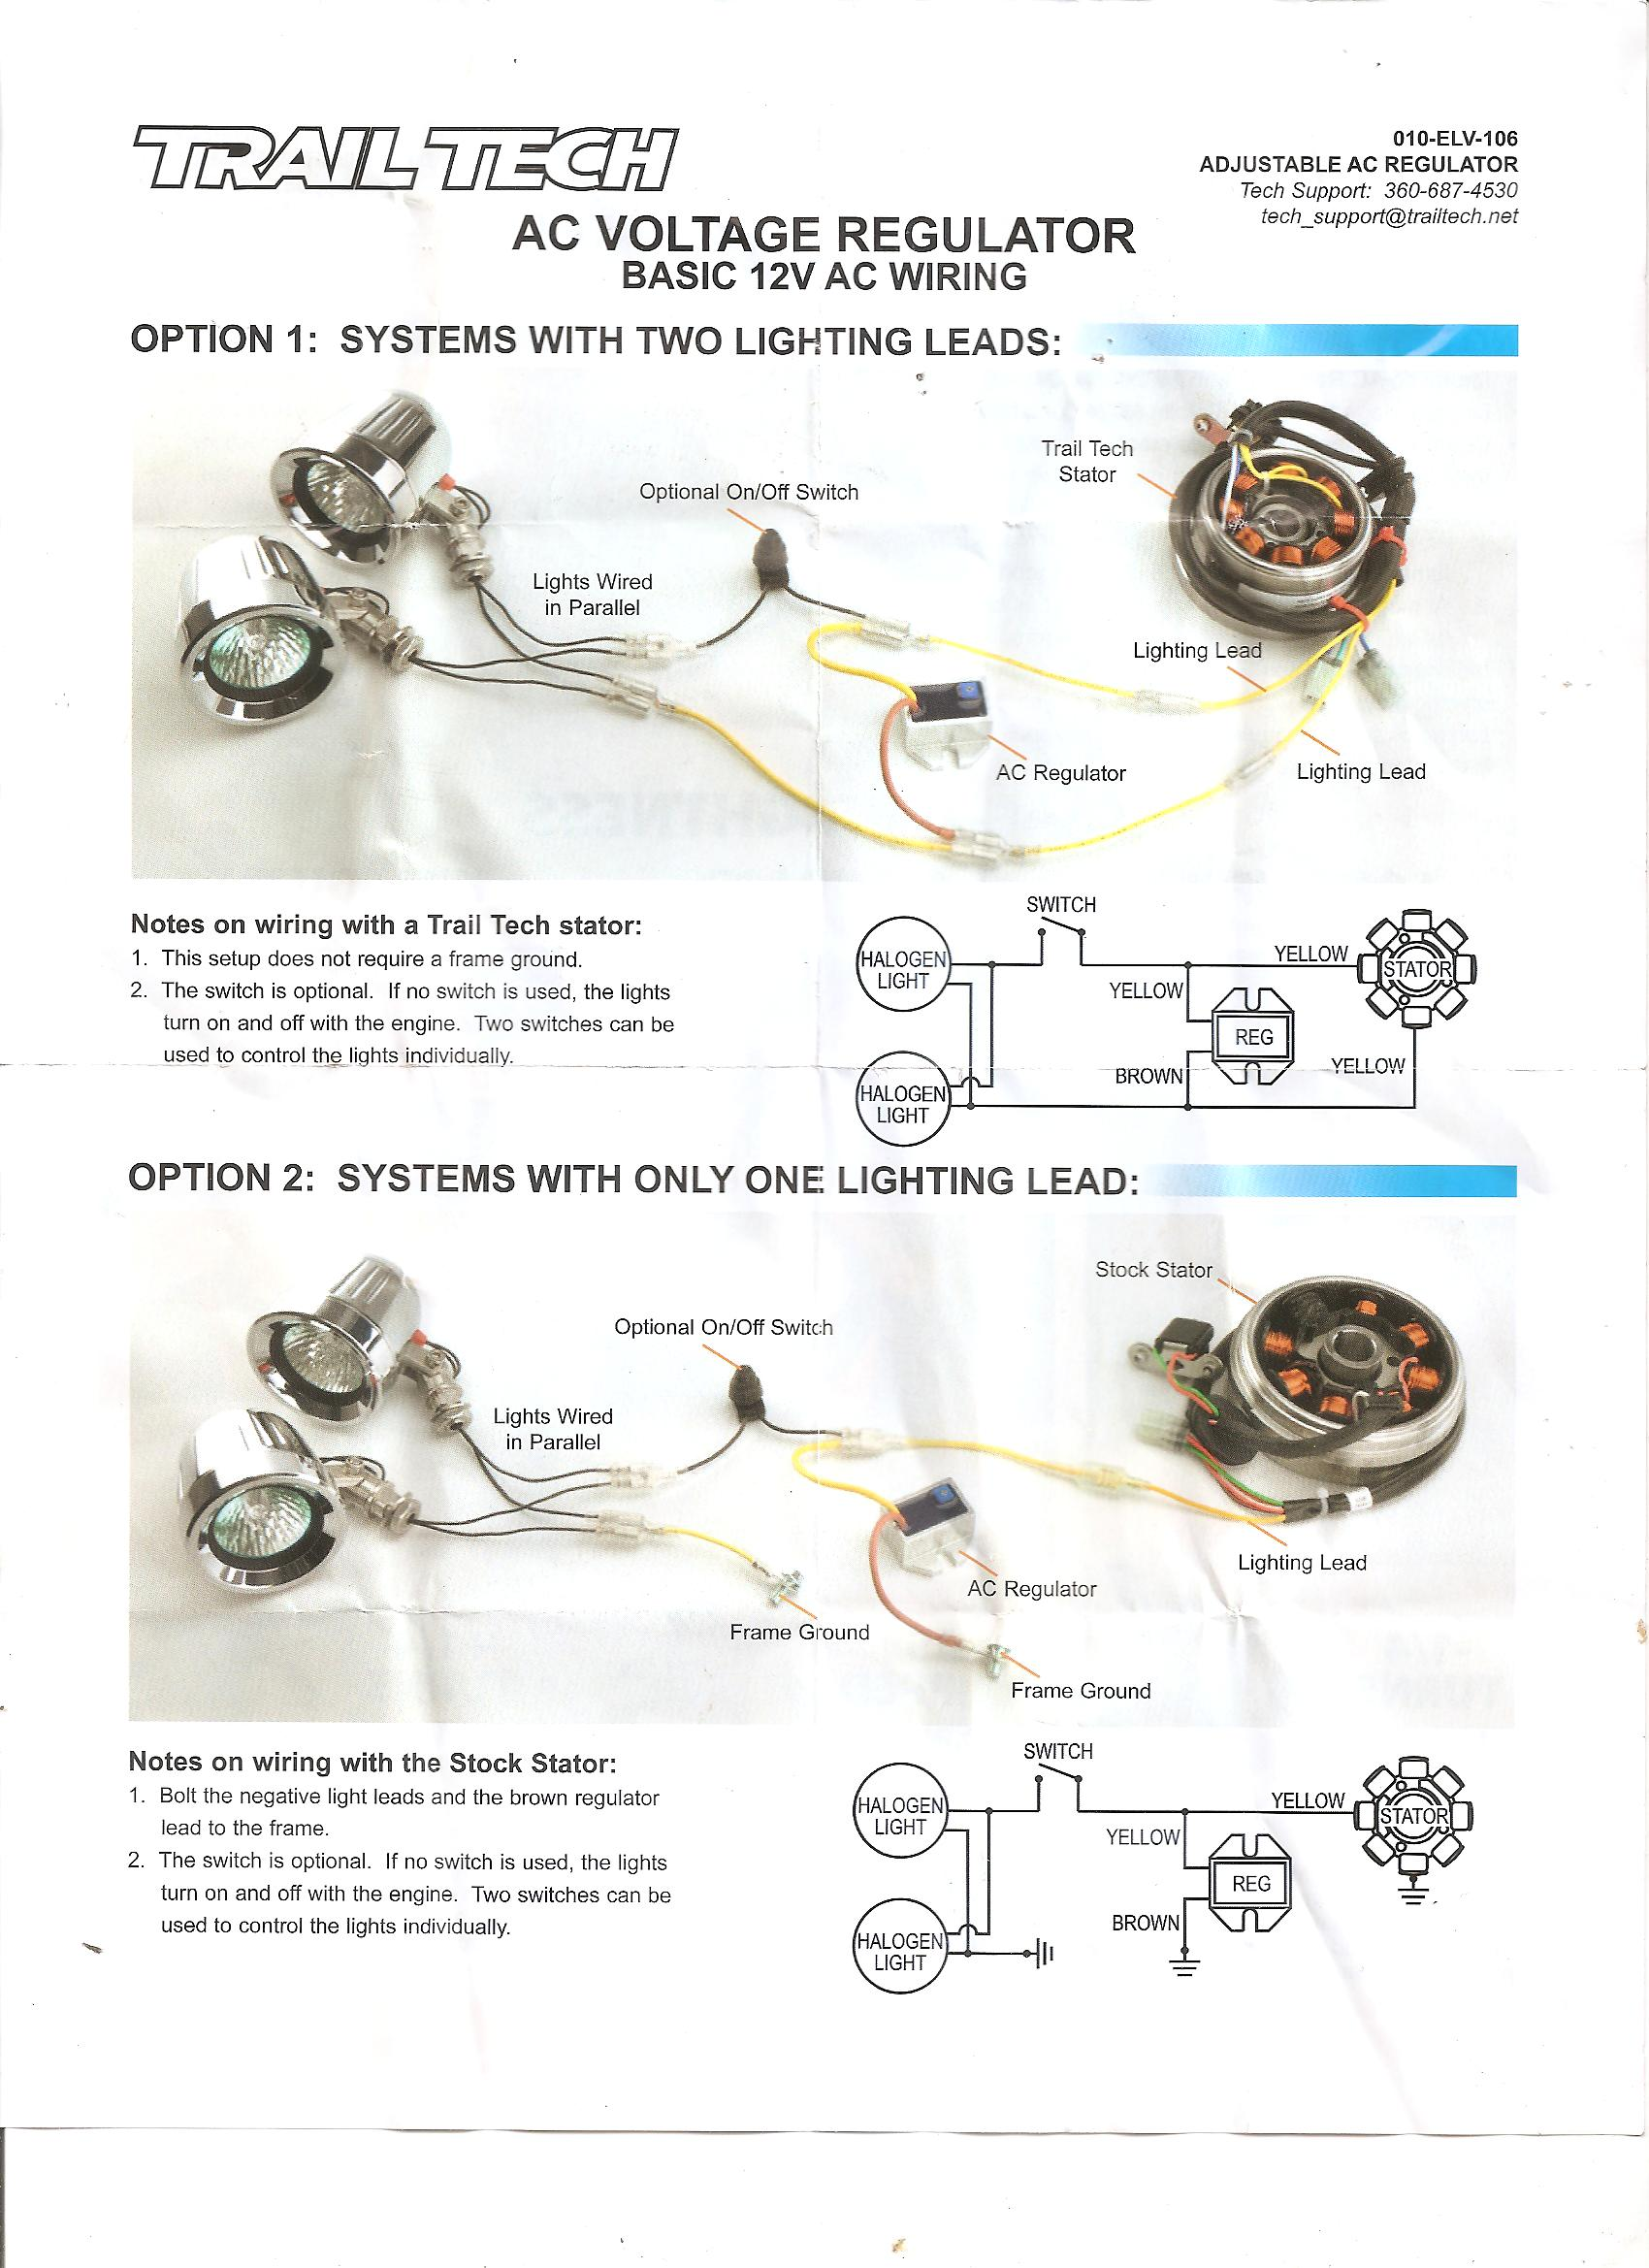 Puch 12V Lighting Coil + Trail Tech Dial Regulator — Moped Army Adjustable Voltage Regulator Wiring Diagram on